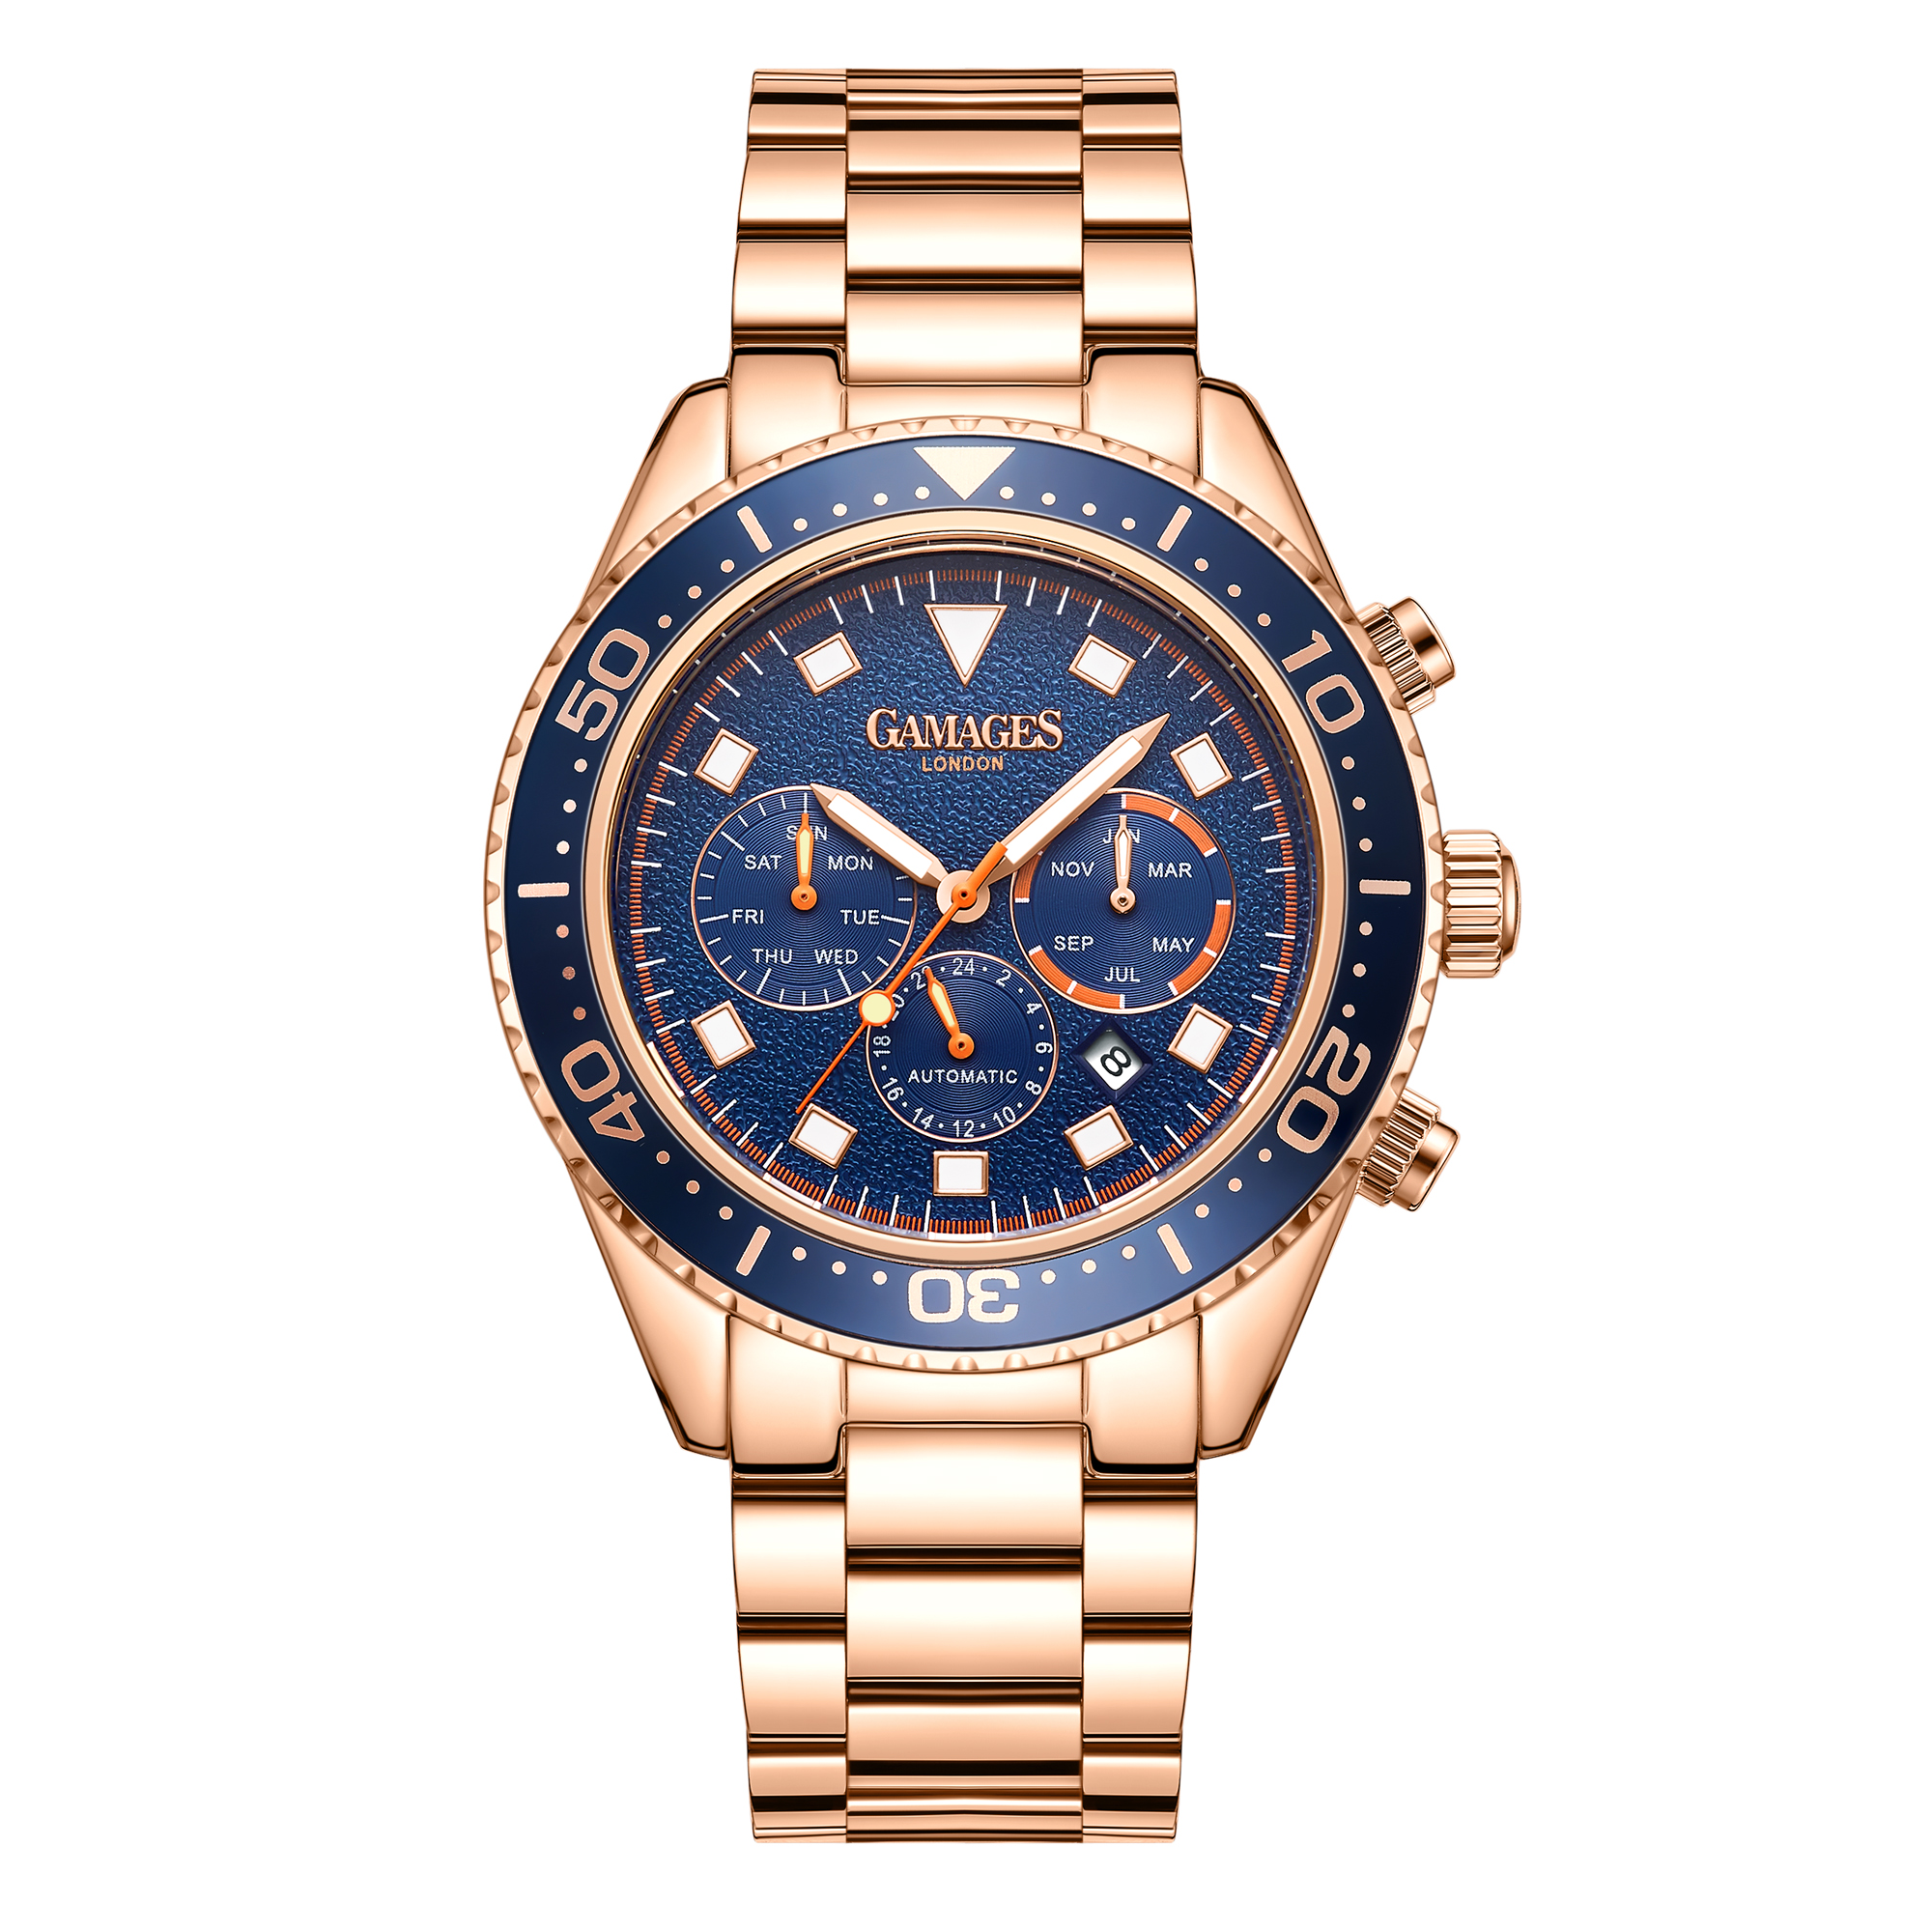 Limited Edition Hand Assembled Gamages Allure Automatic Rose – 5 Year Warranty & Free Delivery